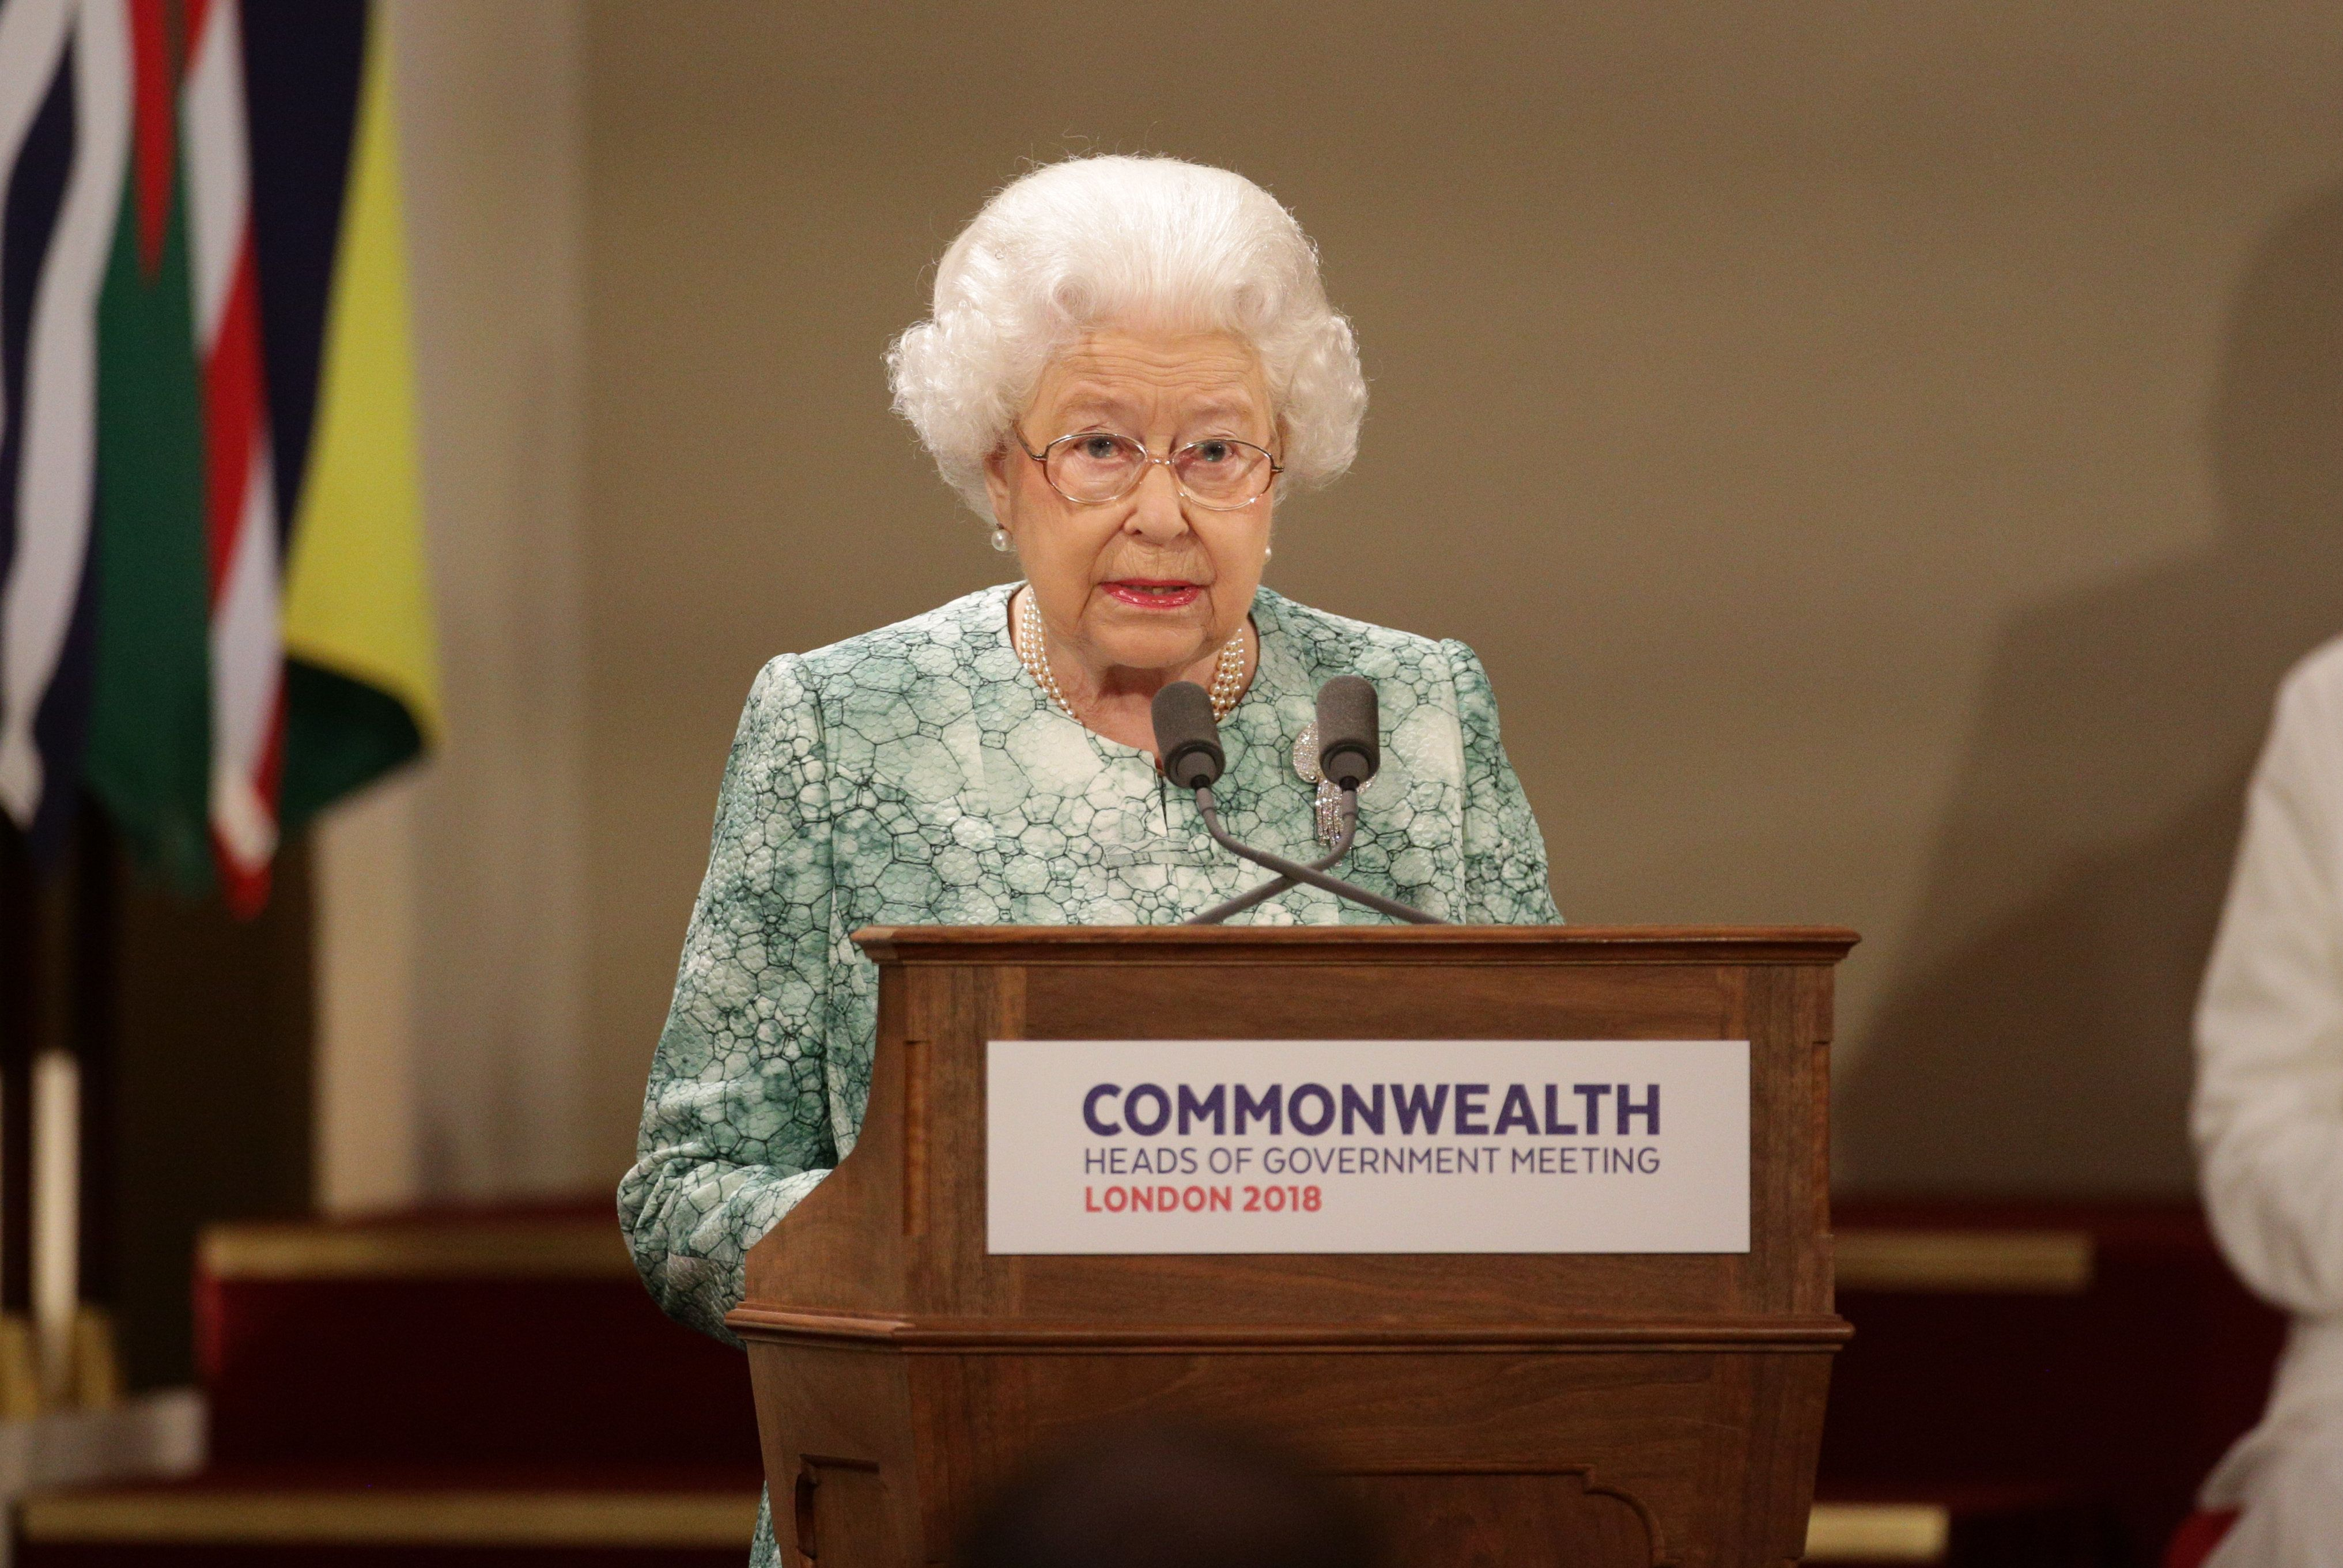 Queen Elizabeth II gives a speech at the formal opening of the Commonwealth Heads of Government Meeting at Buckingham Palace